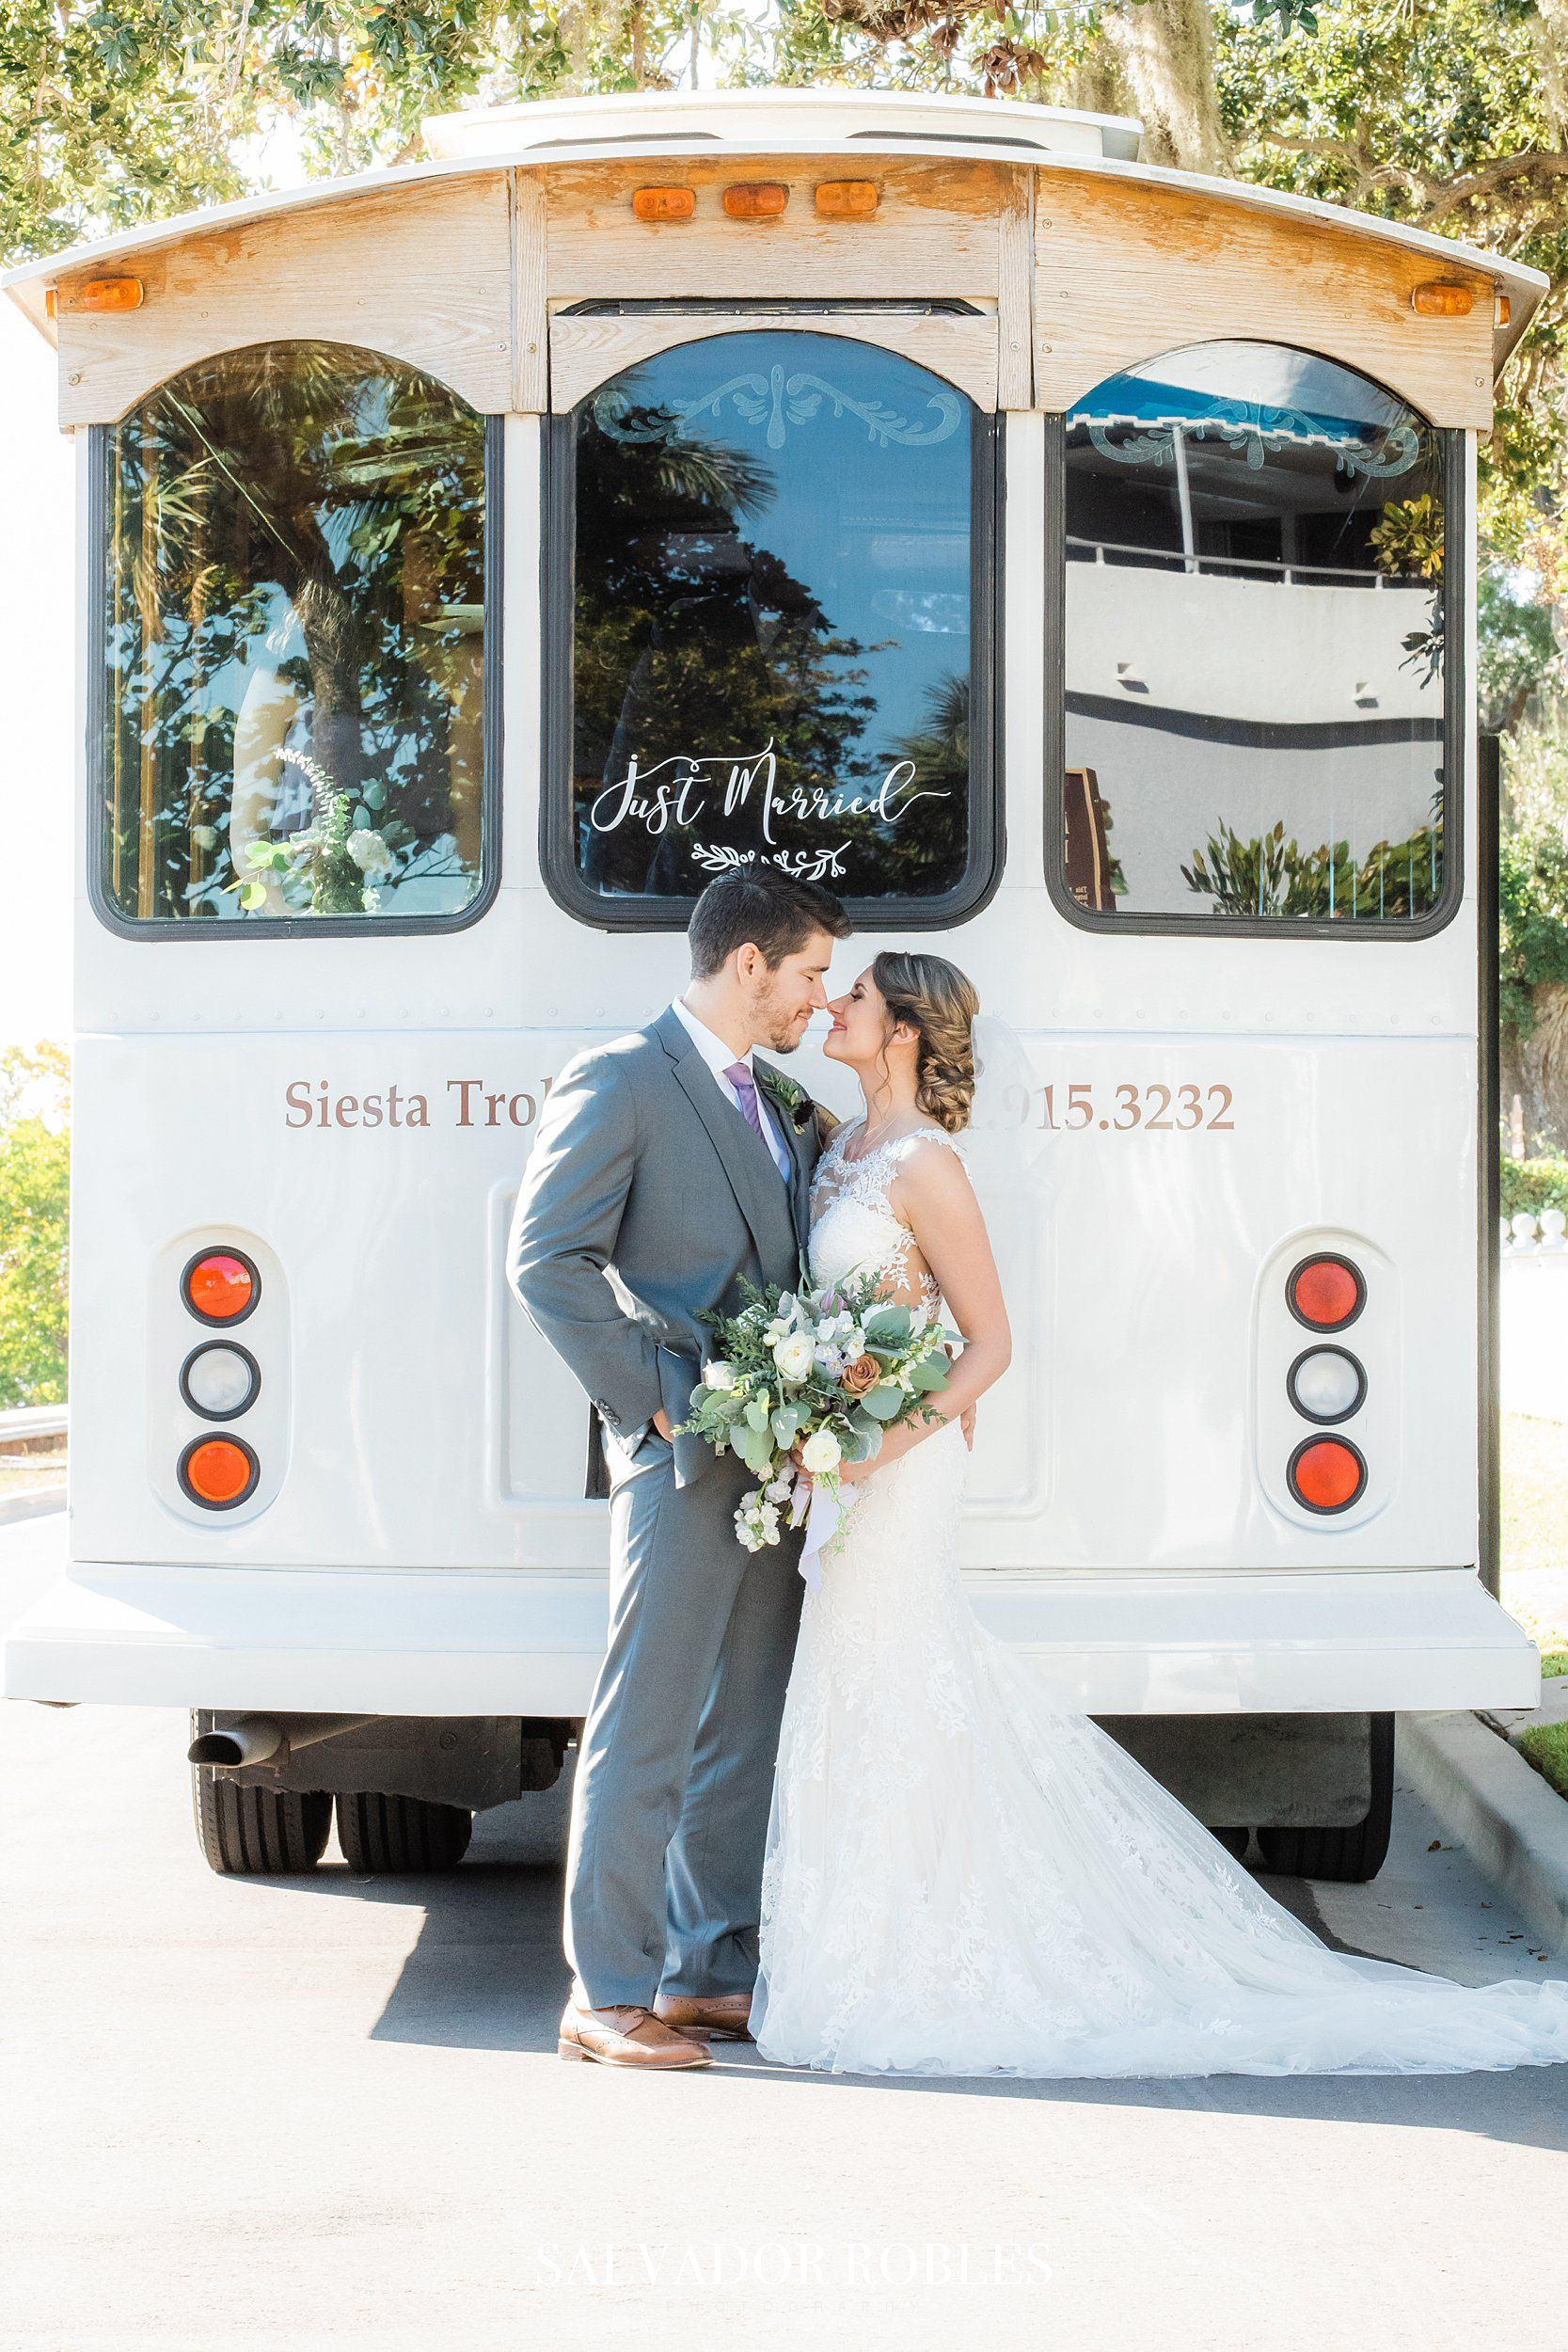 Sarasota Wedding Photographer Salvador Robles Photography Trolley Wedding Photos In 2020 Photography Photographer Wedding Photographers